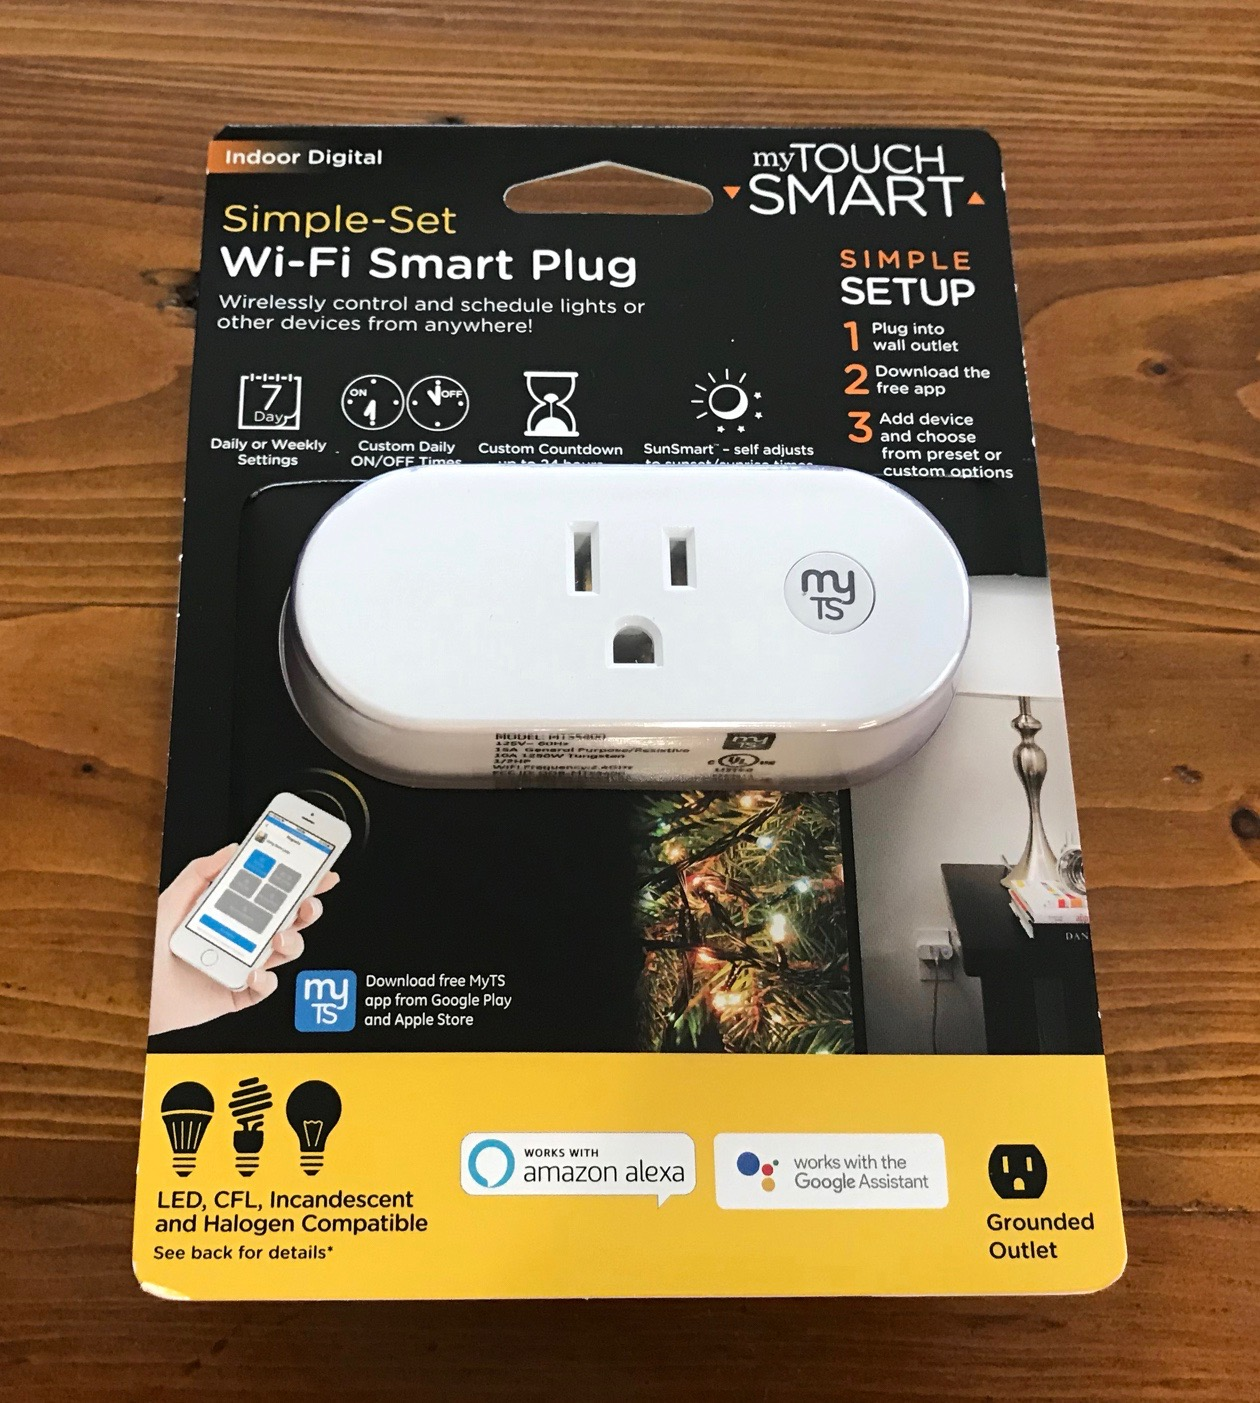 mytouchsmart indoor Wi-Fi Smart Plug